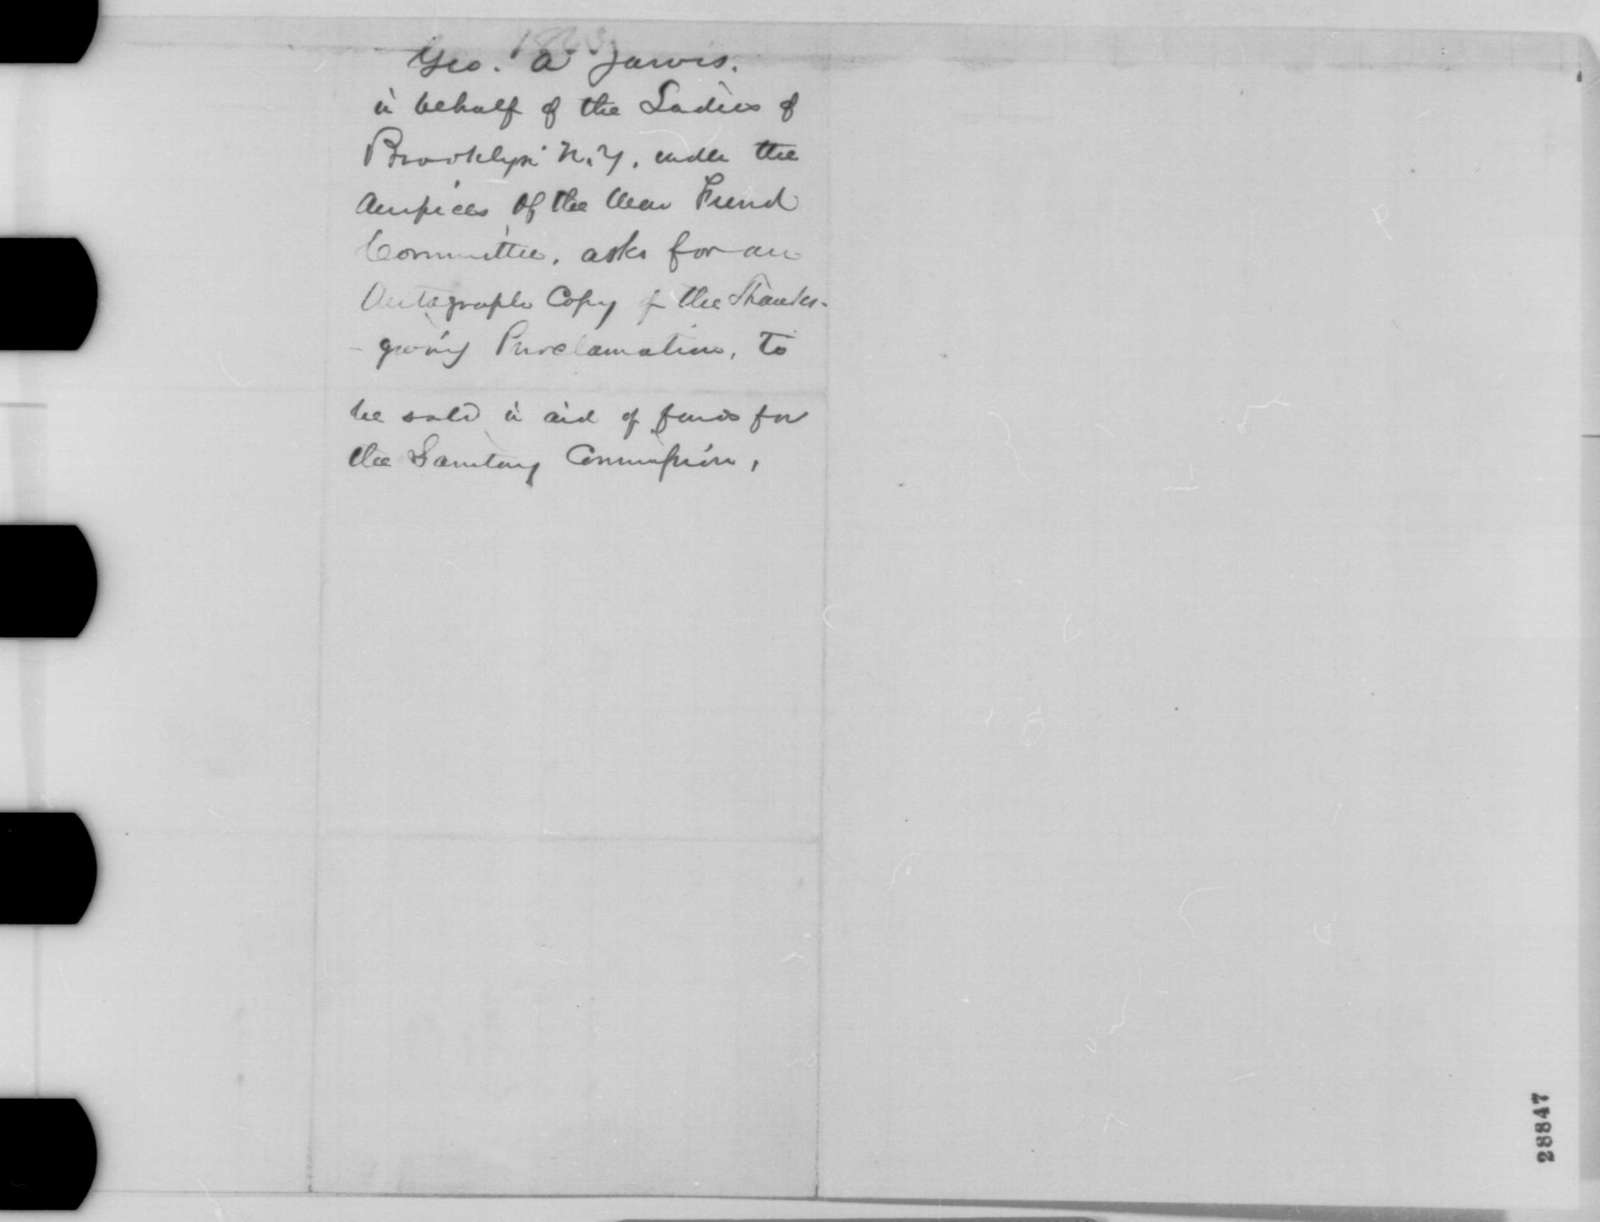 George A. Jarvis to Abraham Lincoln, Tuesday, December 22, 1863  (Requests manuscript for Brooklyn War Fund Committee)